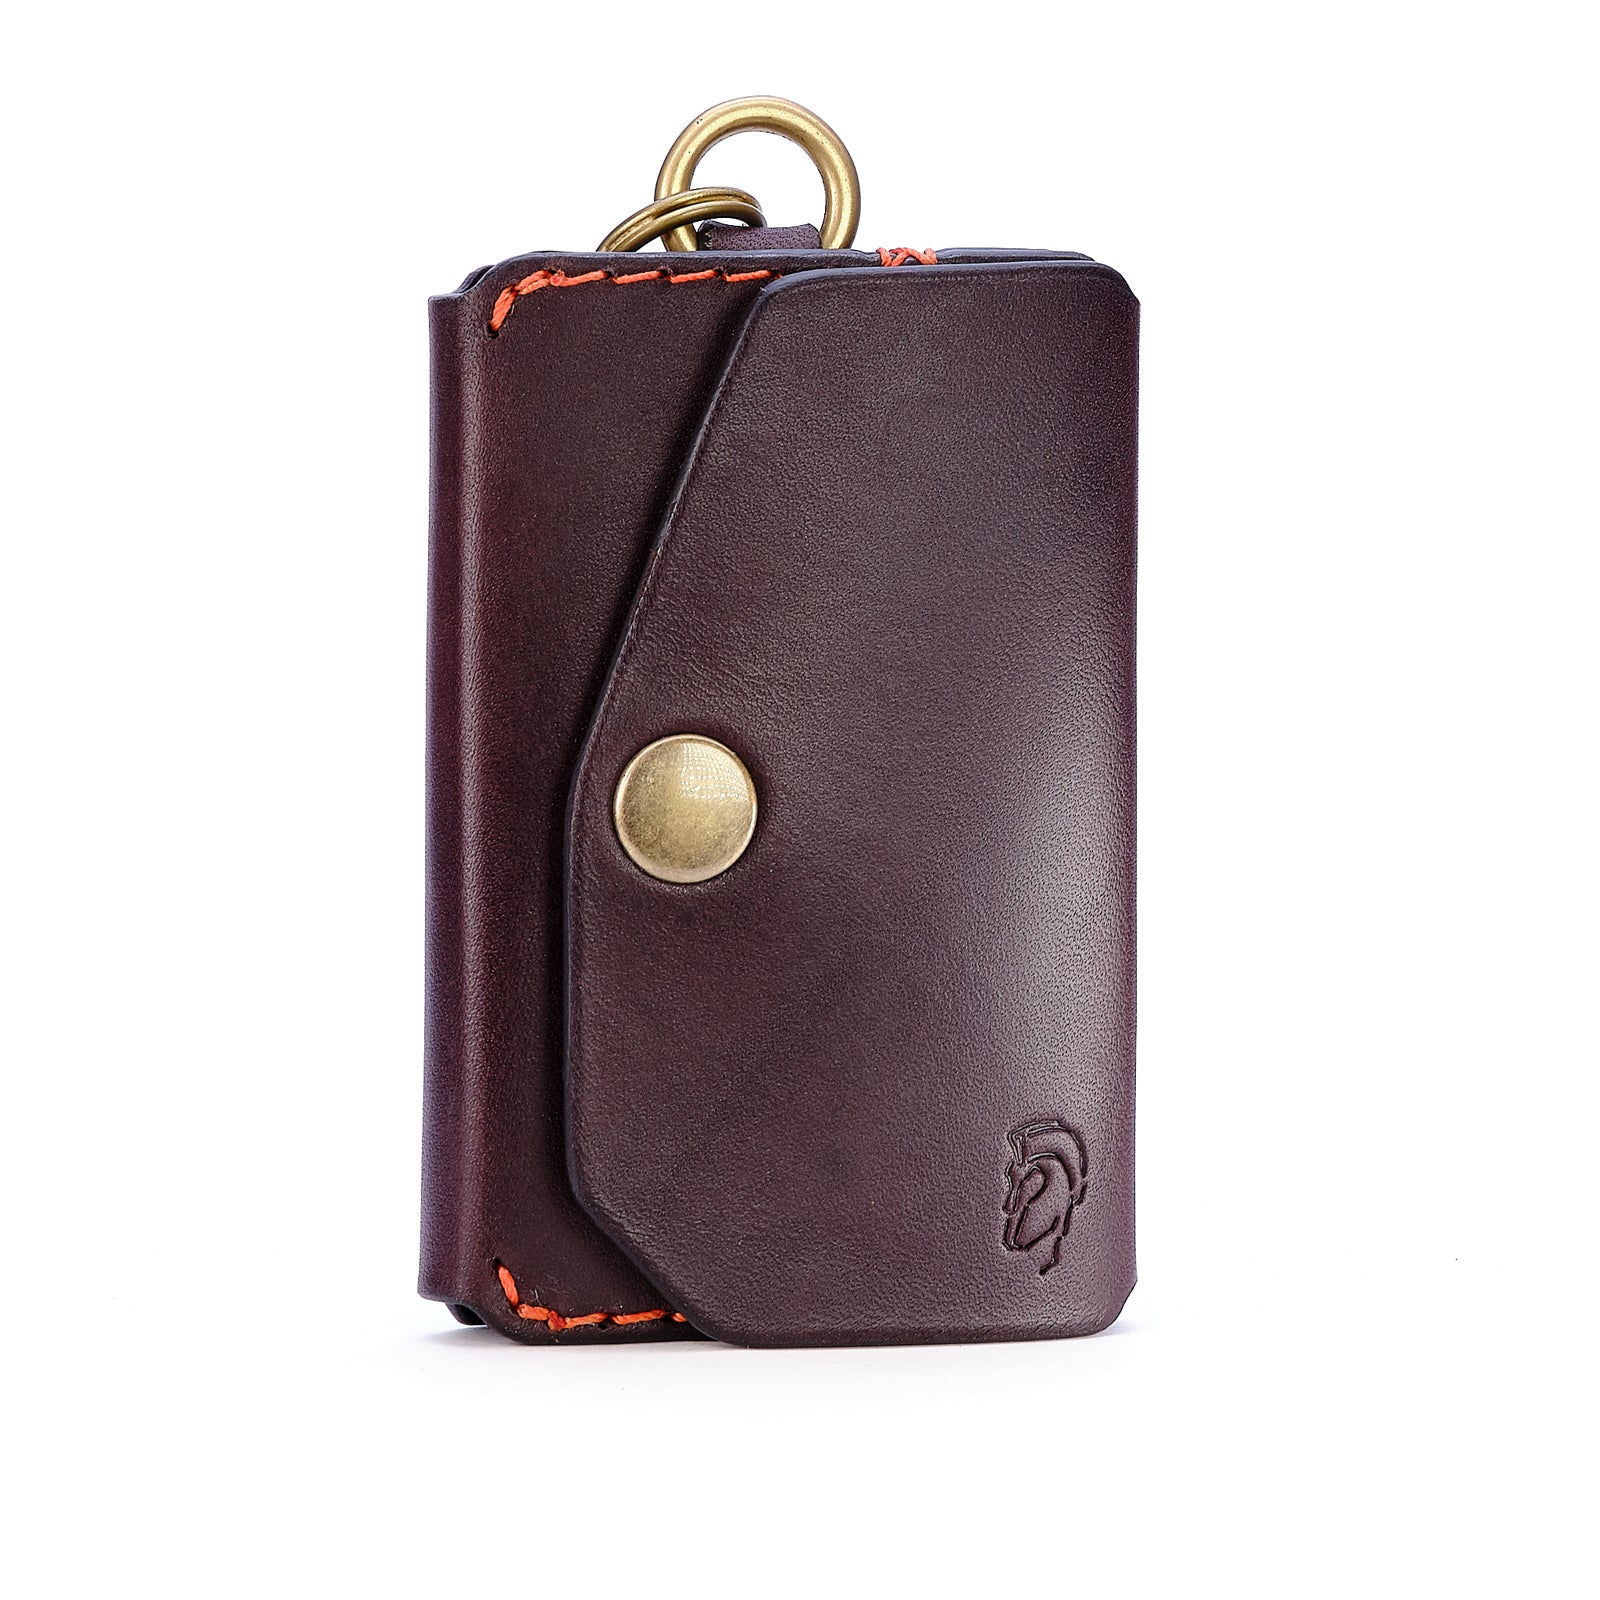 No 1501 KELET Key Wallet